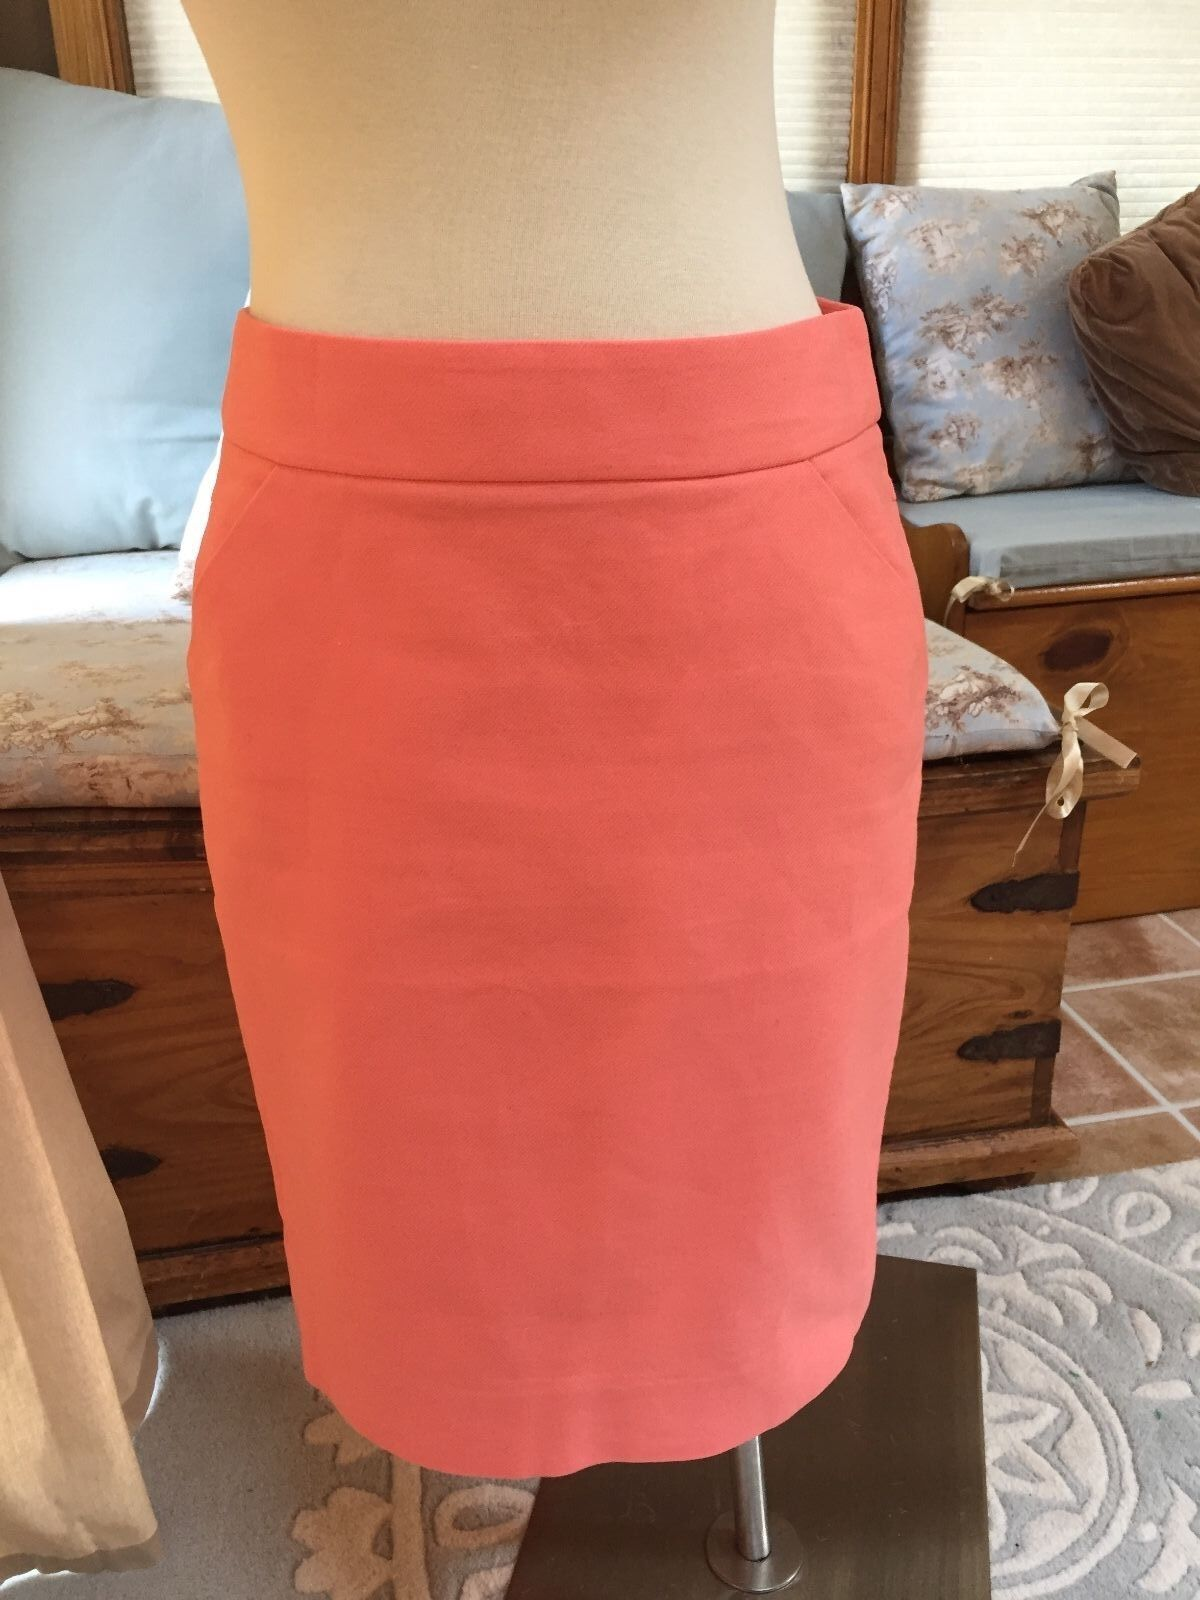 J. Crew Coral Salmon Pink The Pencil Skirt 6 Excellent